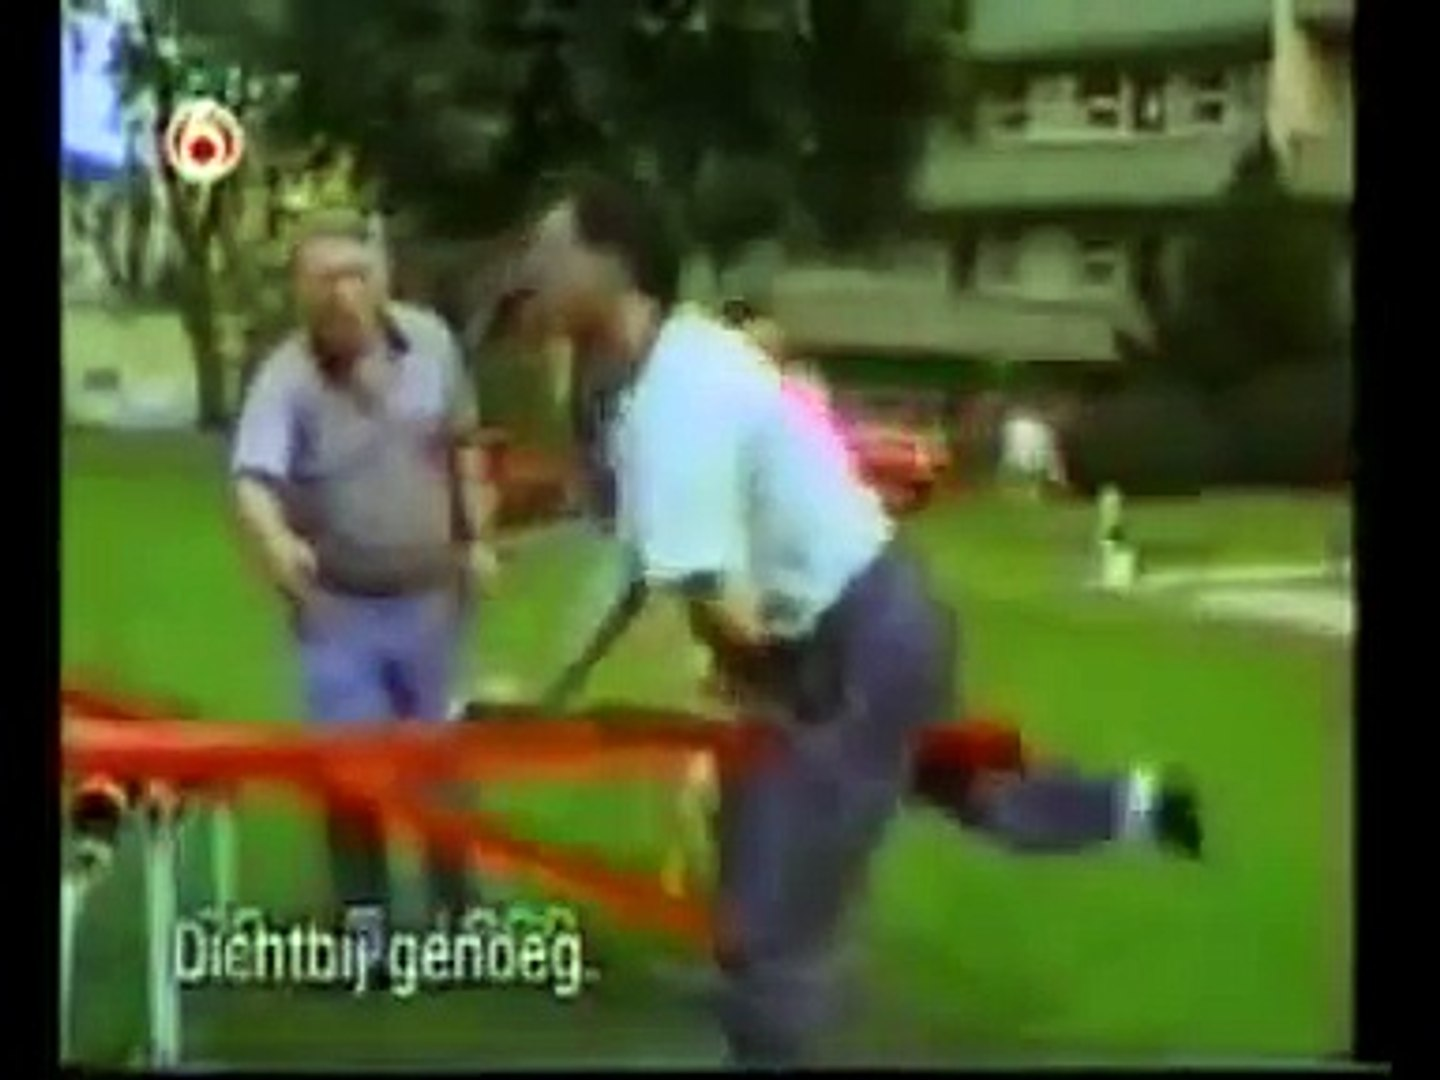 FUNNY PLAYGROUND ACCIDENTS America's Funniest Home Videos